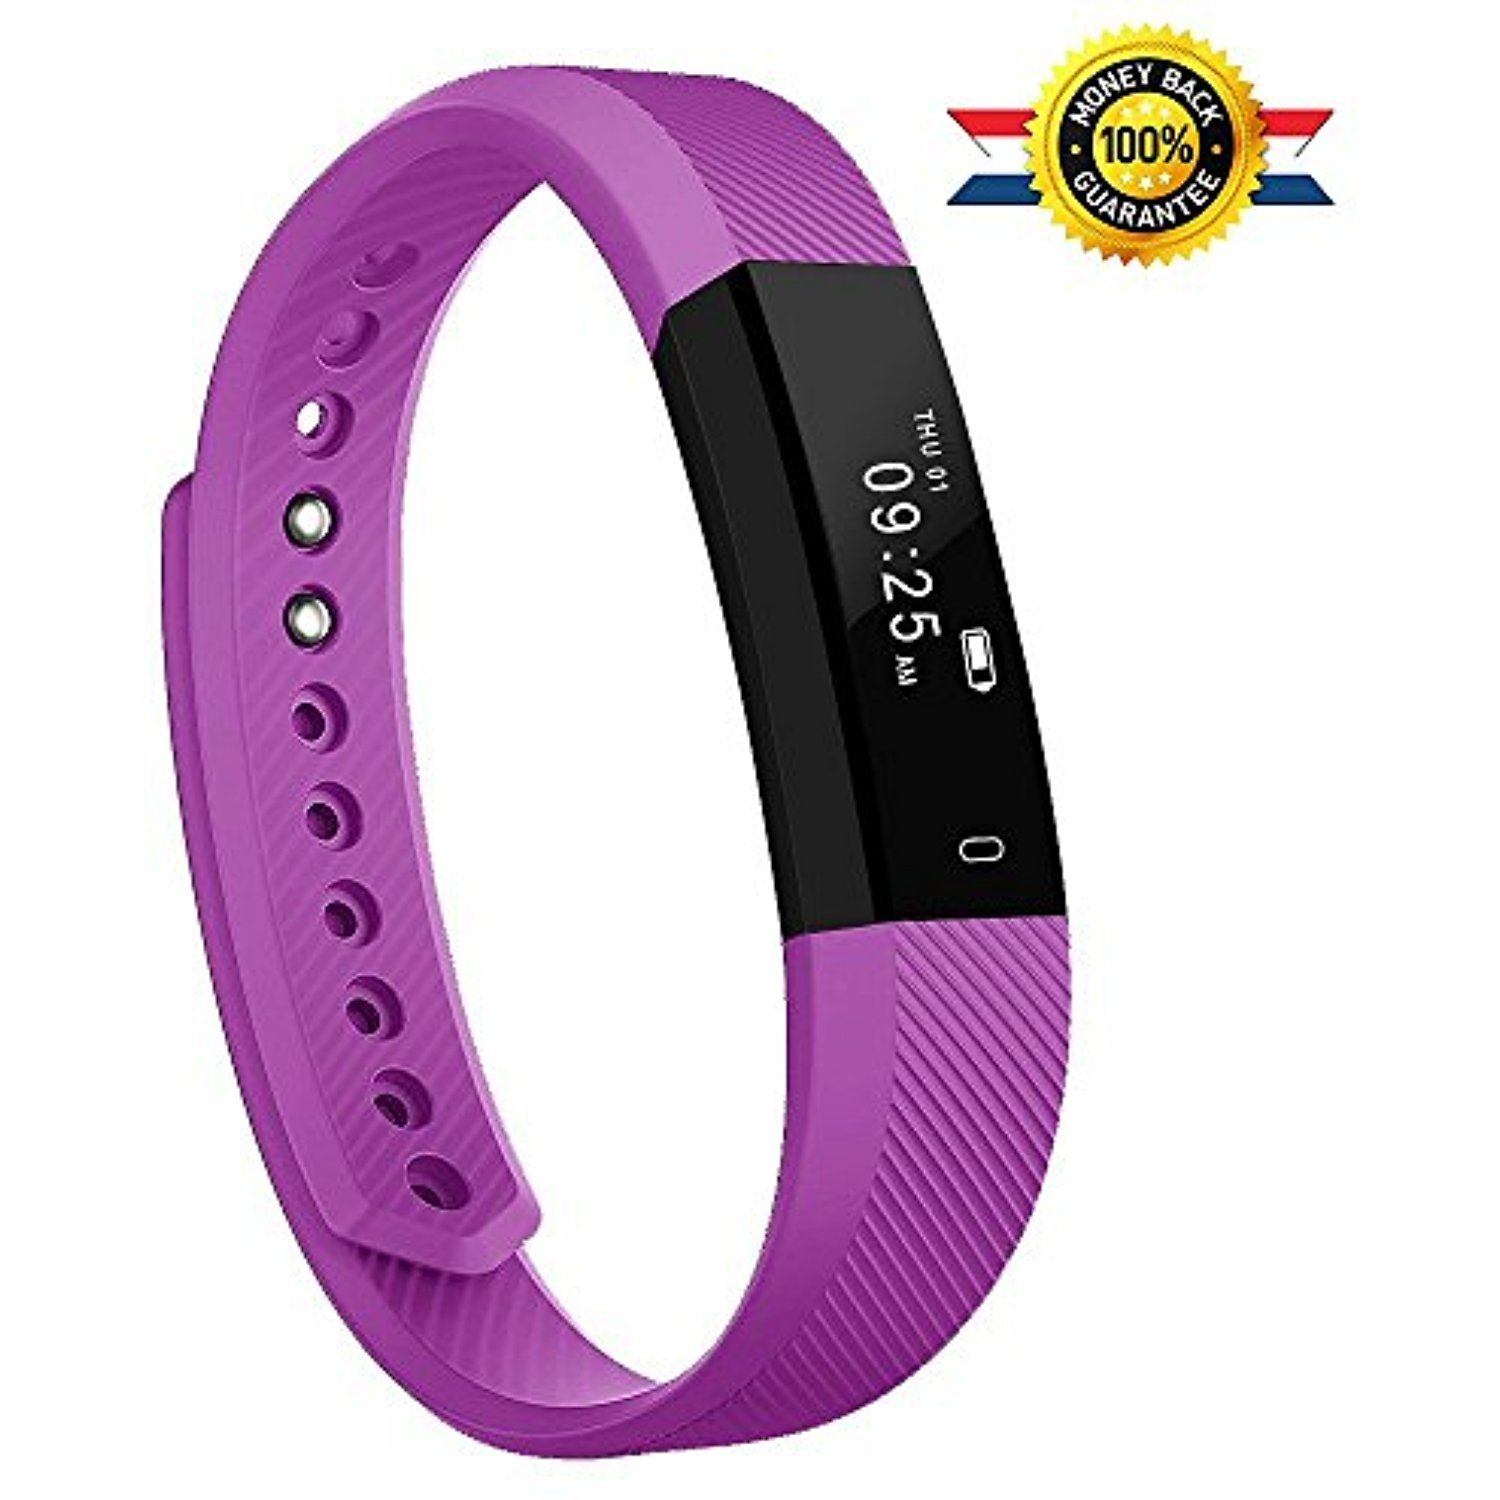 〠BIG SALE】Fitness Tracker,YG3 Activity Tracker Water